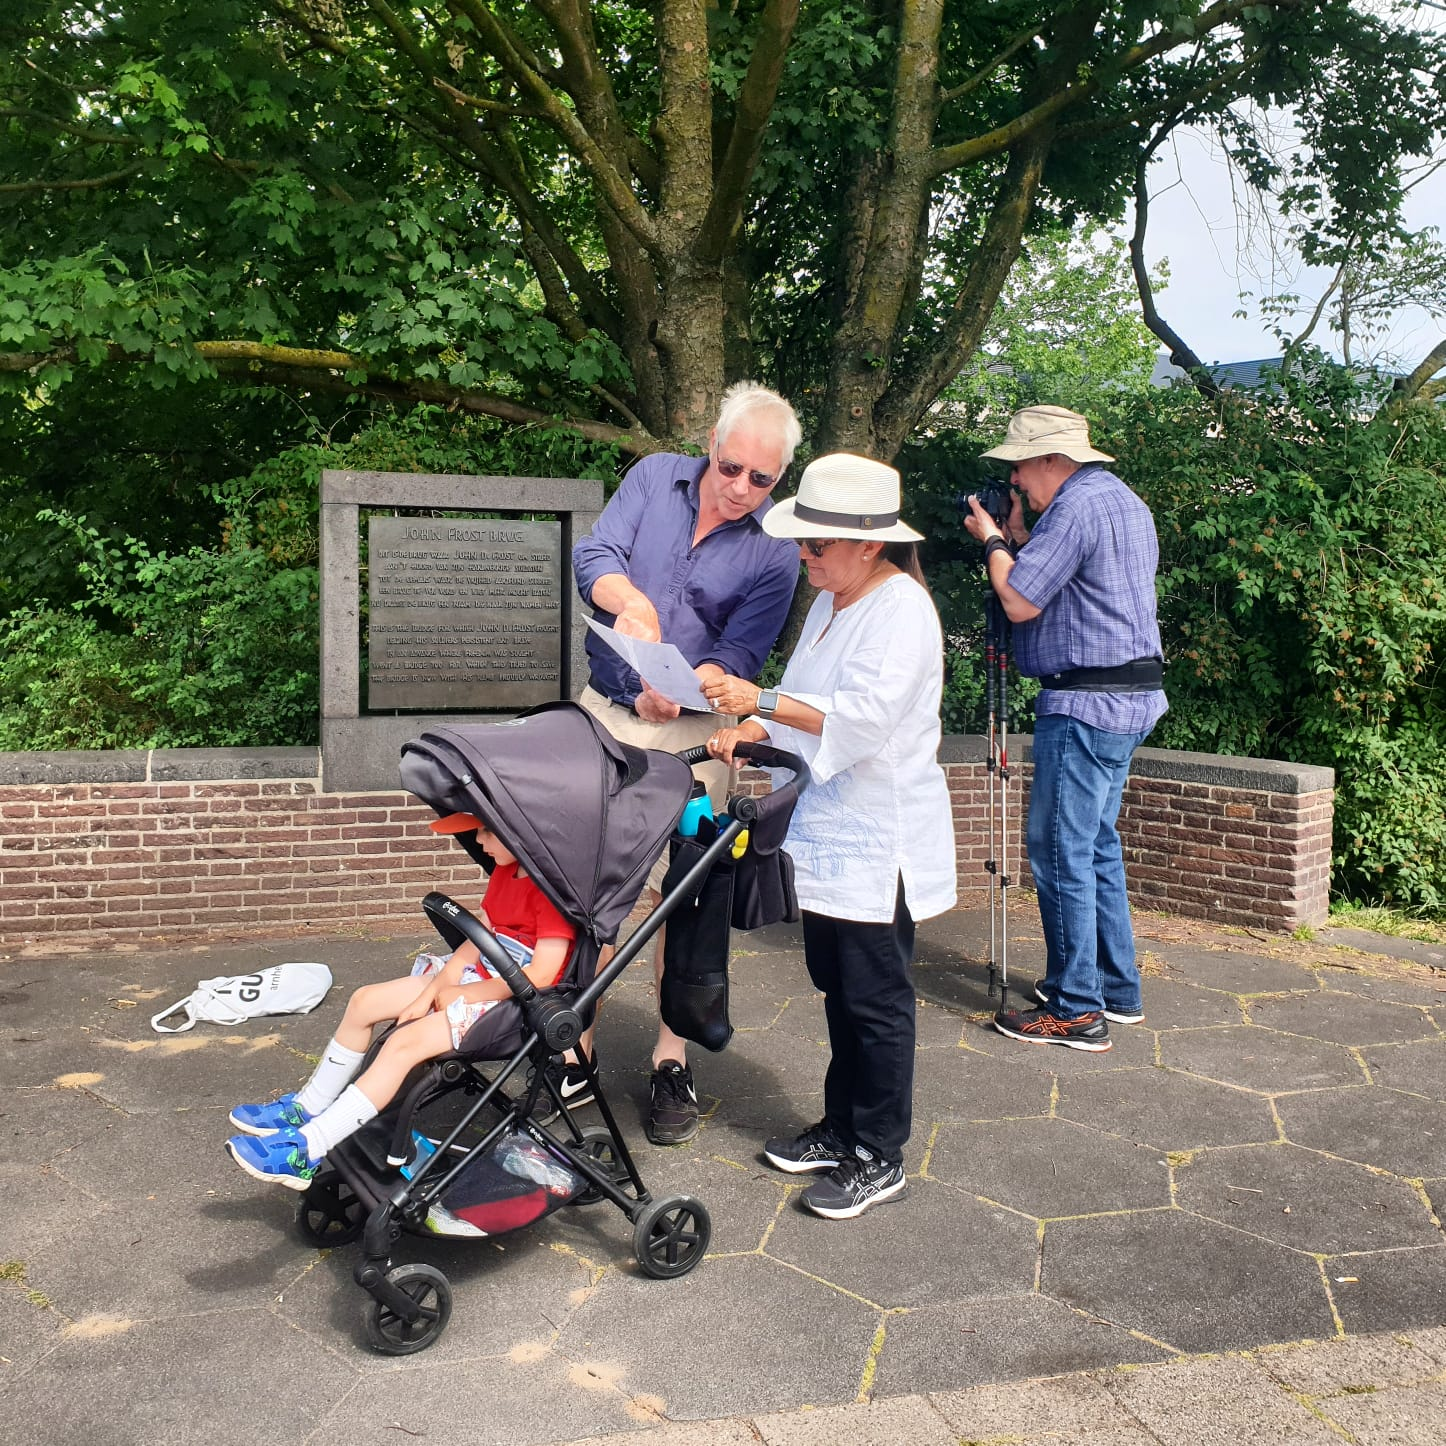 Battle of Arnhem city walk